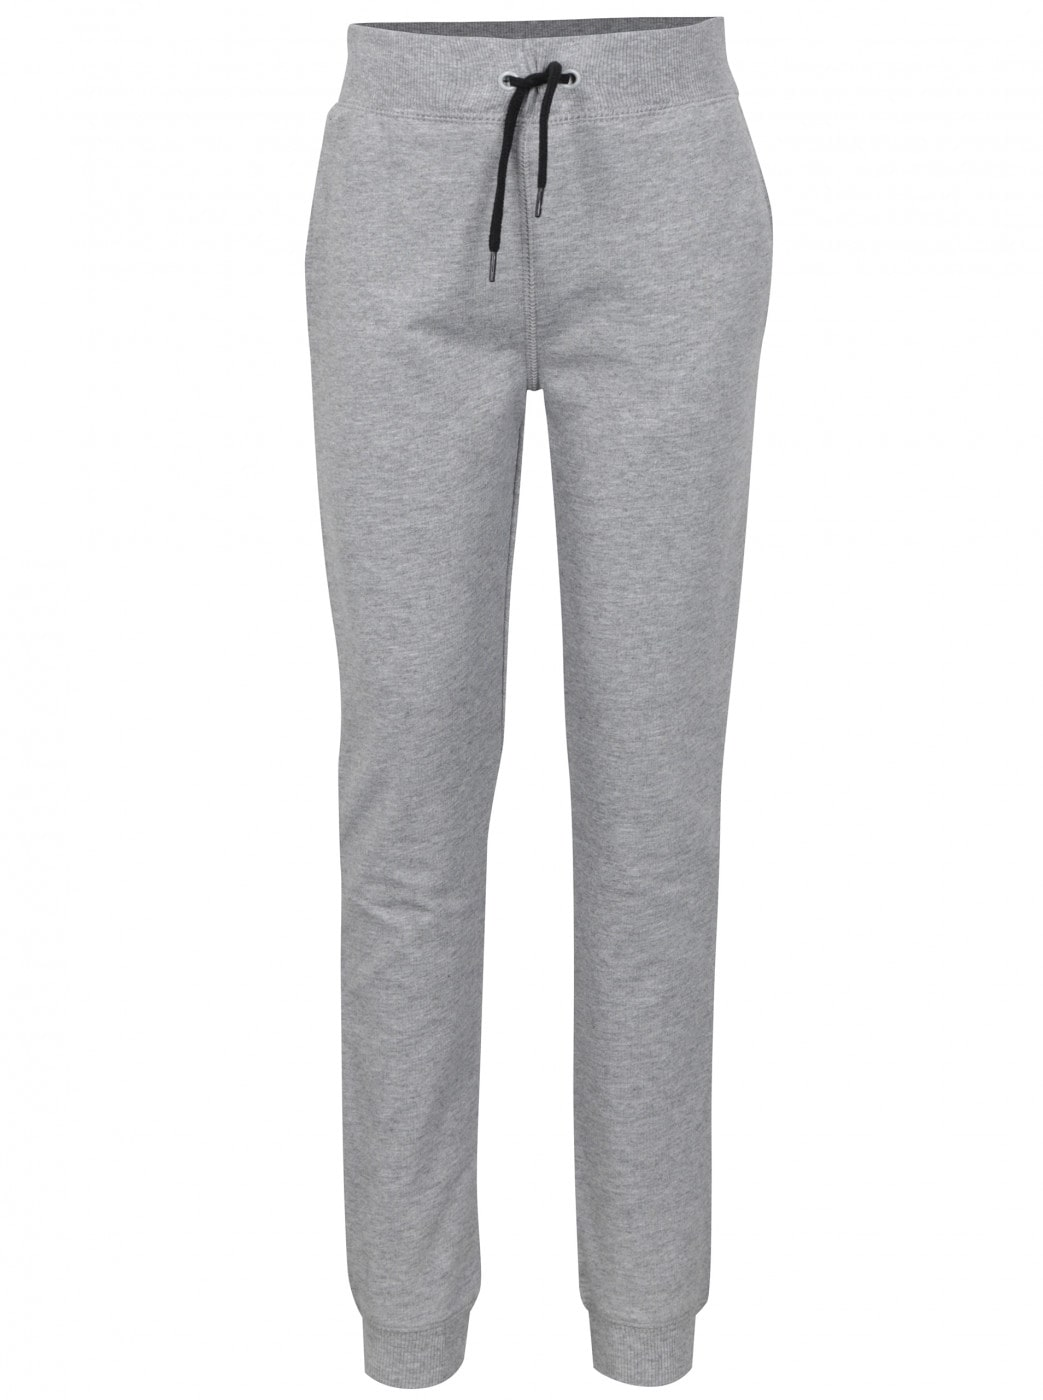 Grey Boy Tracksuit Name it Sweat